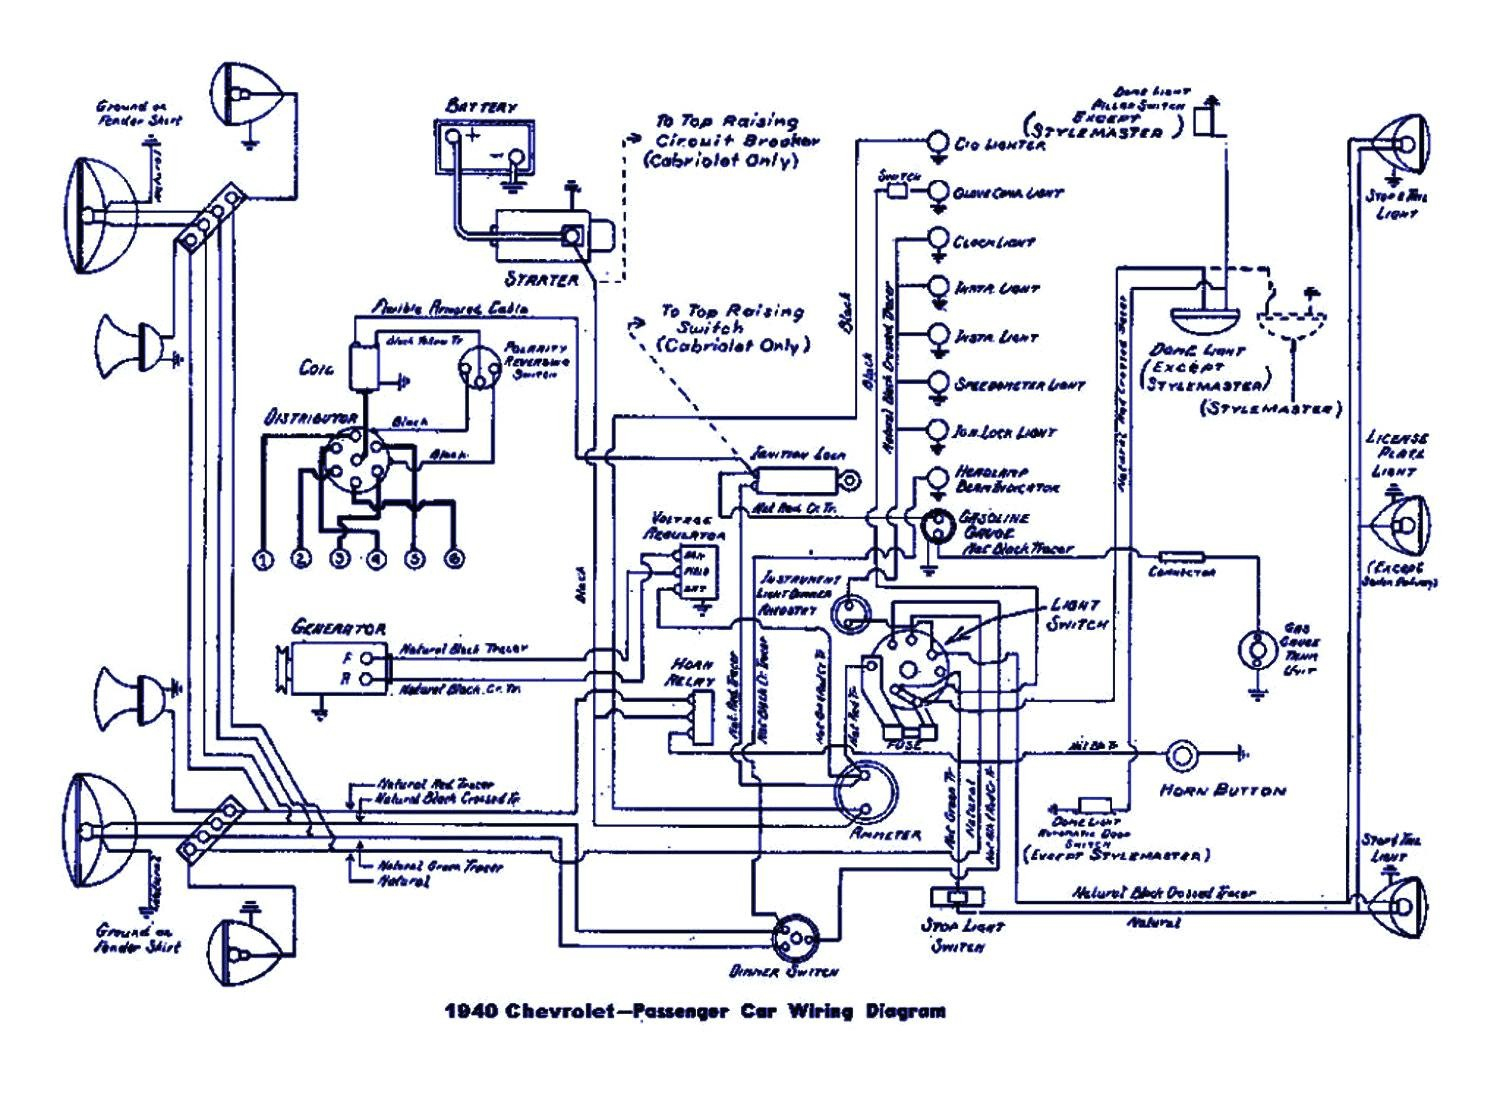 Wiring Diagrams Ezgo 36 Volt For 12 Volt - Wiring Diagrams Hubs - 48 Volt Club Car Wiring Diagram